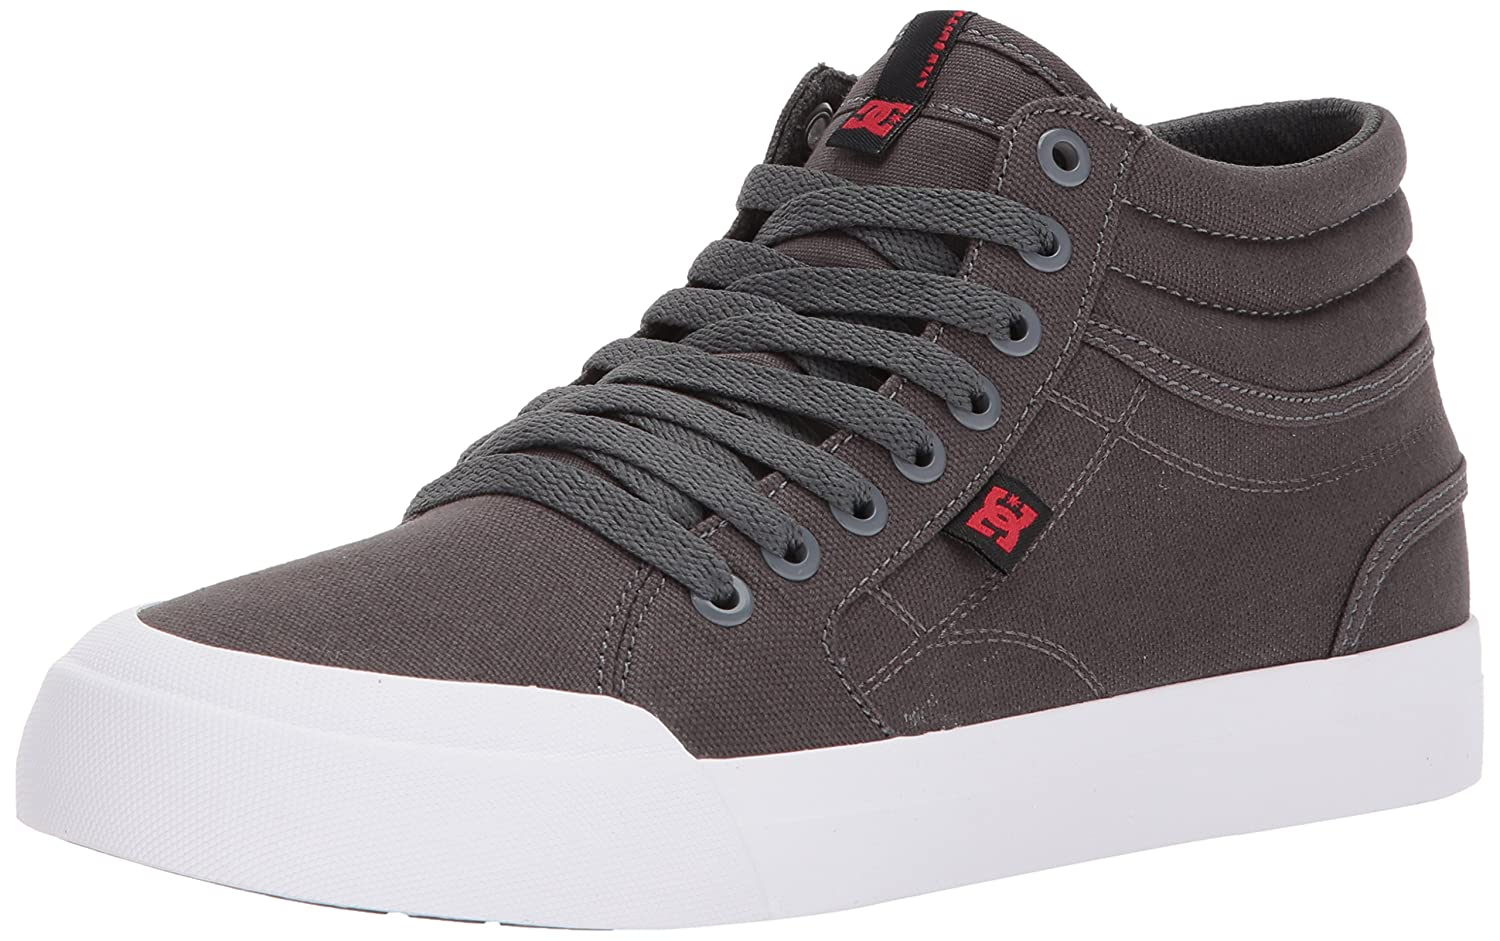 DC Men's Evan Smith Hi Tx Skate Shoe 6.5 D D US|Grey/Black/Red